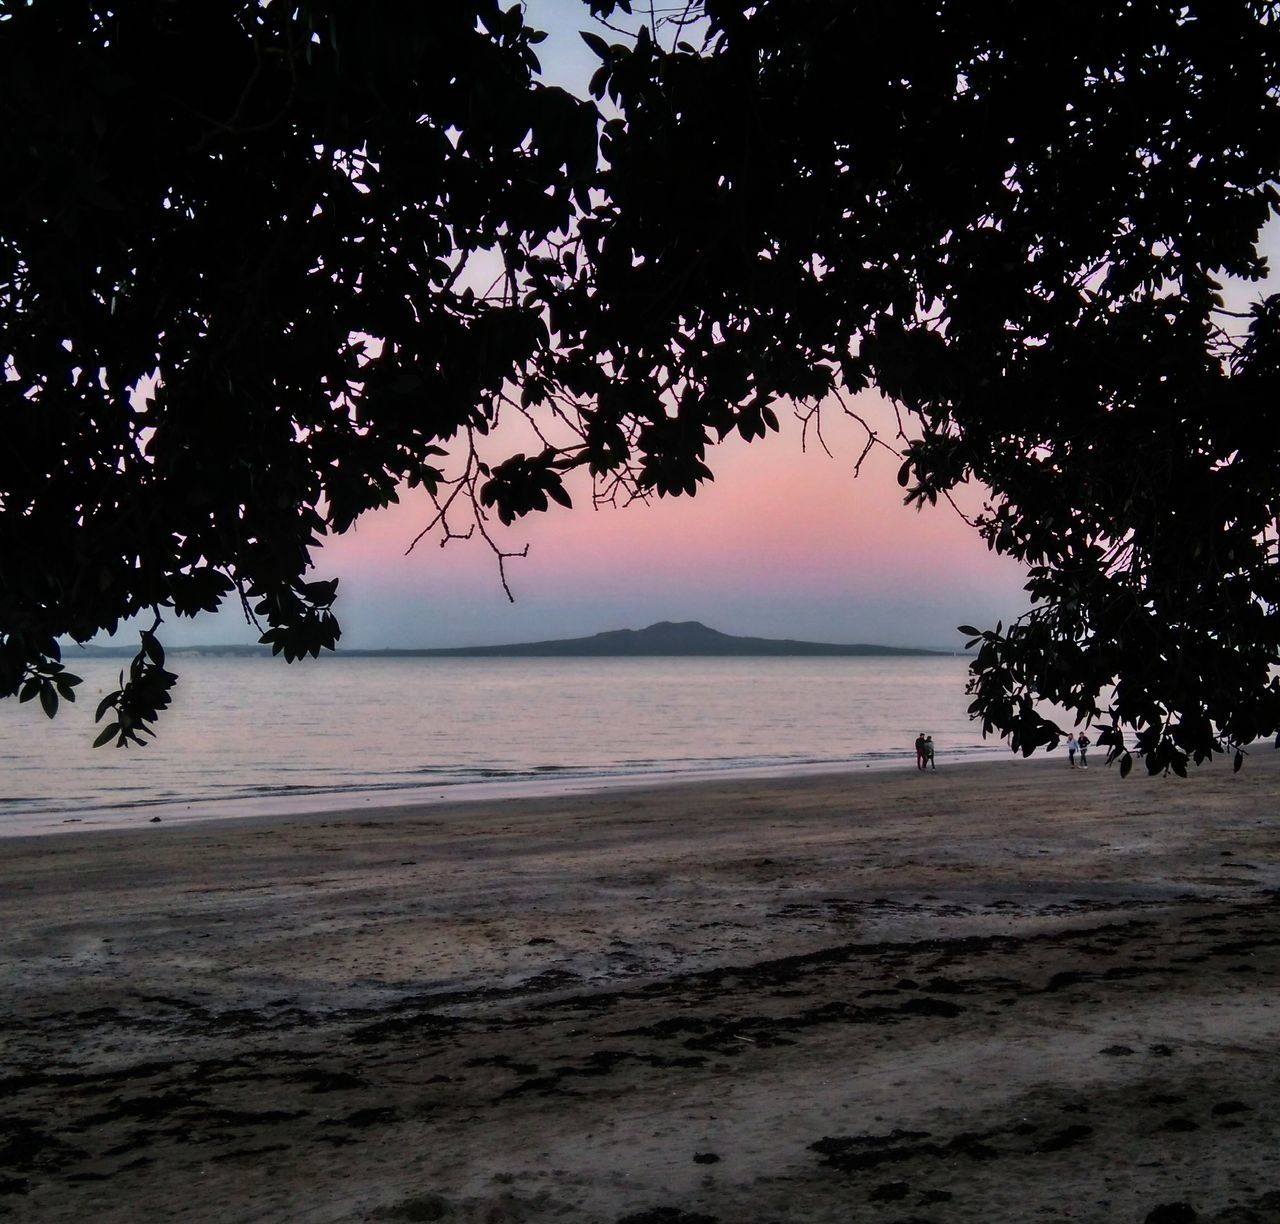 Sunset New Zealand New Zealand Landscape New Zealand Beach Rangitoto